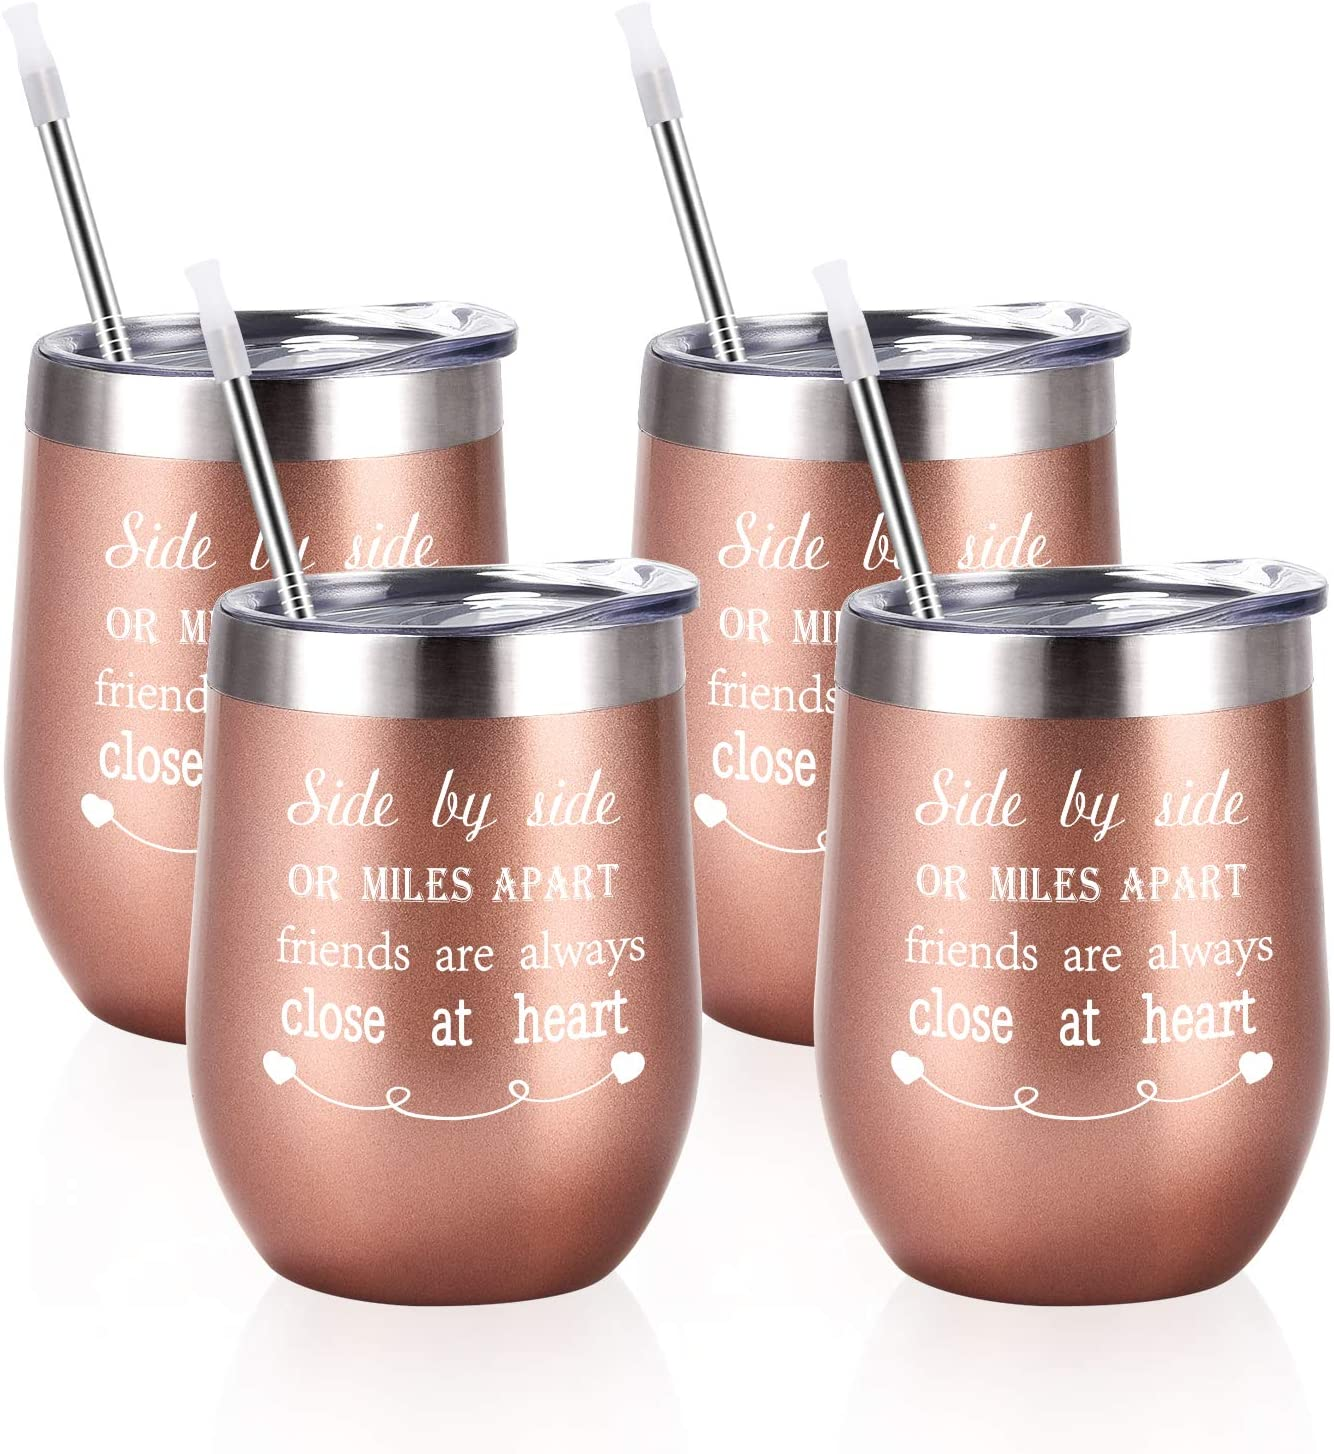 Friends Wine Tumbler Set of 4, Side By Side or Miles Apart Friends Are Always Close at Heart Wine Tumbler for Long Distance Friendship, 12 Oz Stainless Steel Insulated Wine Tumbler with Lid and Straw